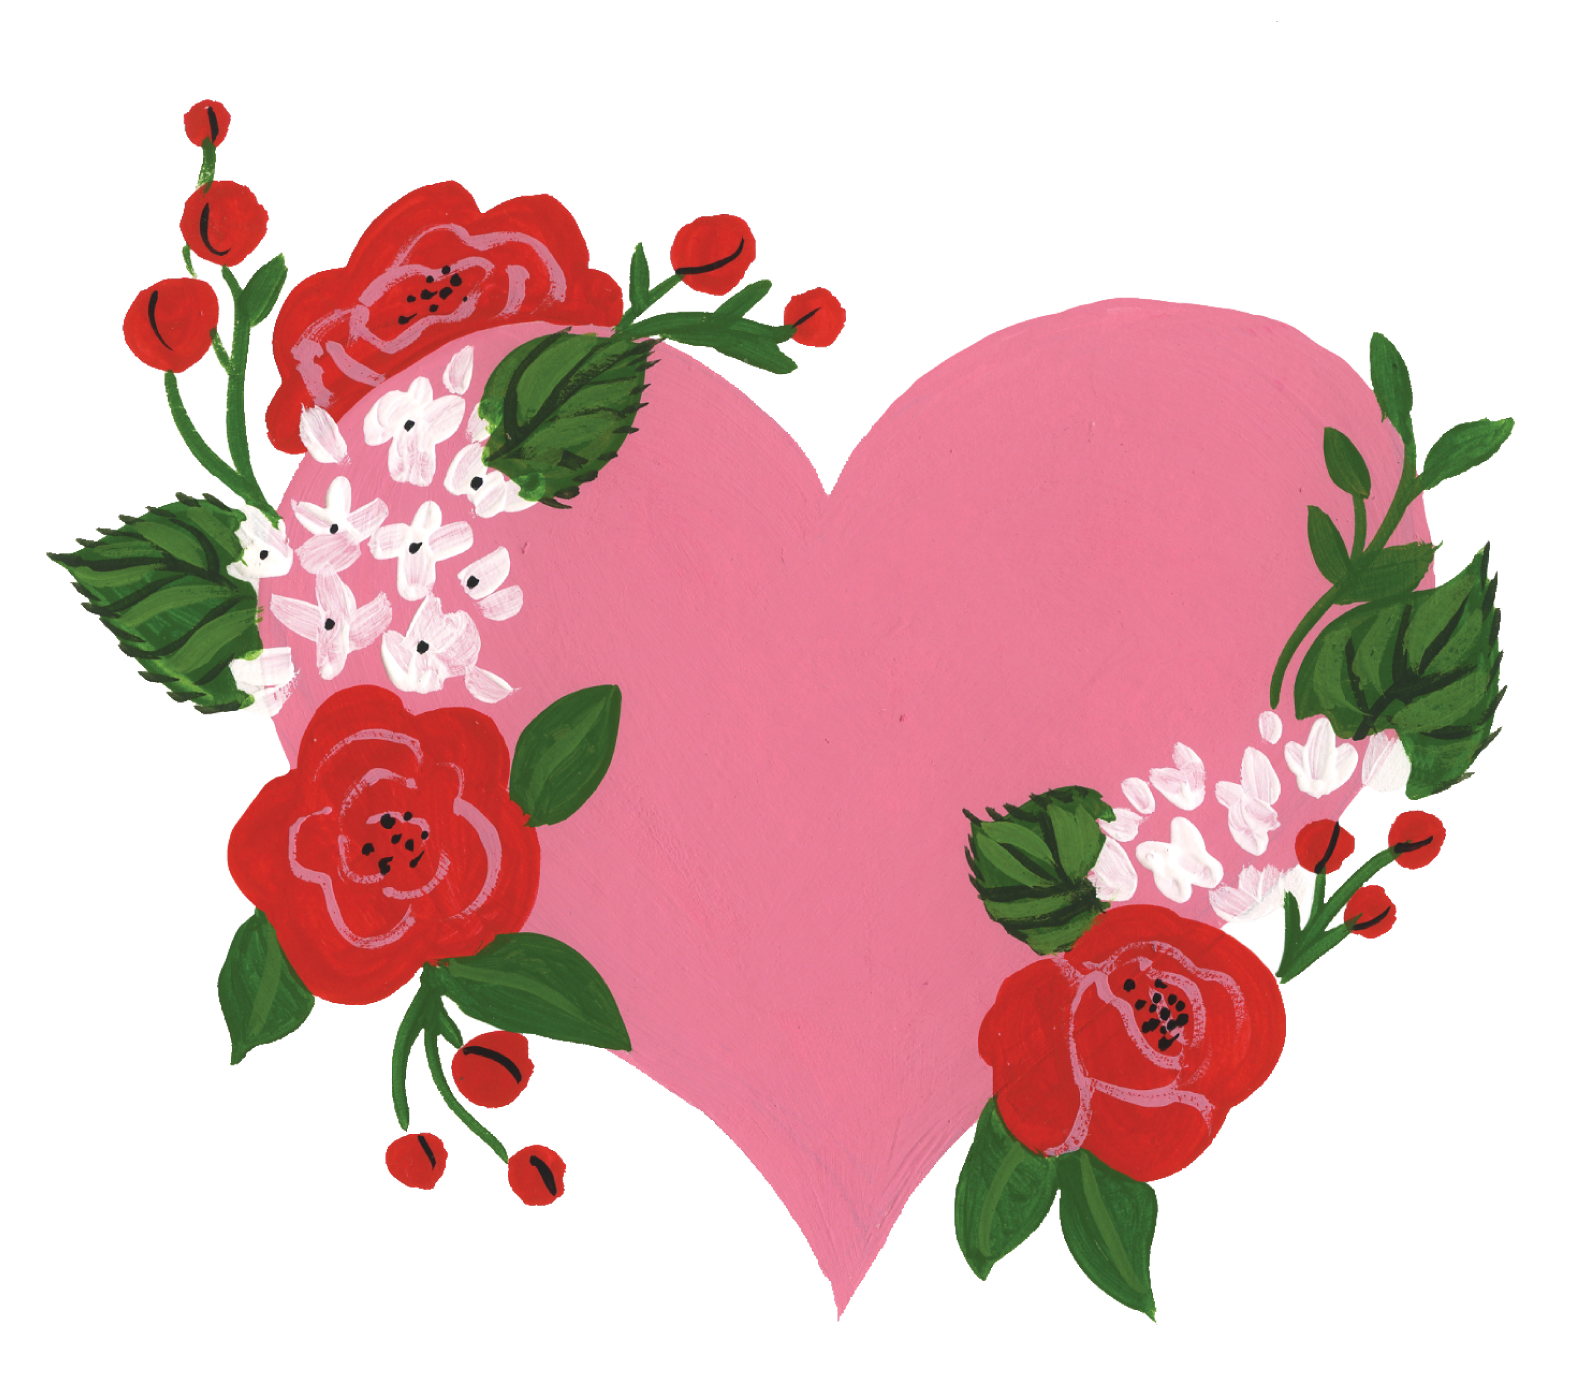 Be My Valentine Floral Heart Print & Cut Files